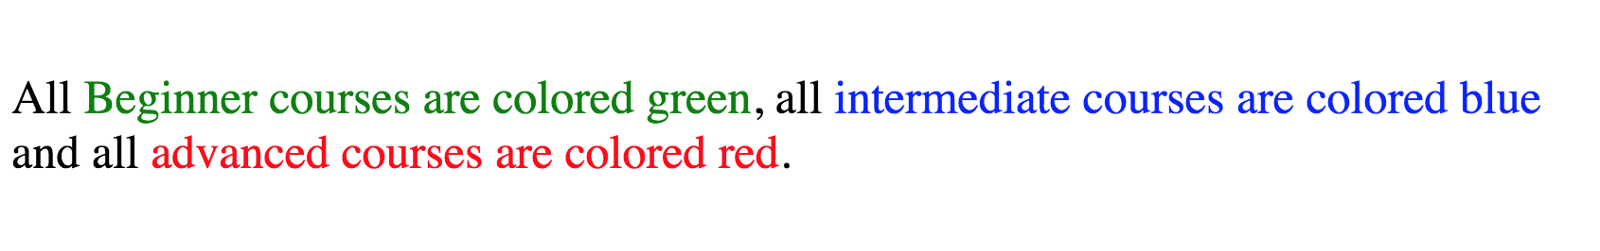 This paragraph is shown with the corresponding colors: All Beginner courses are colored green, all intermediate courses are colored blue and all advanced courses are colored red.